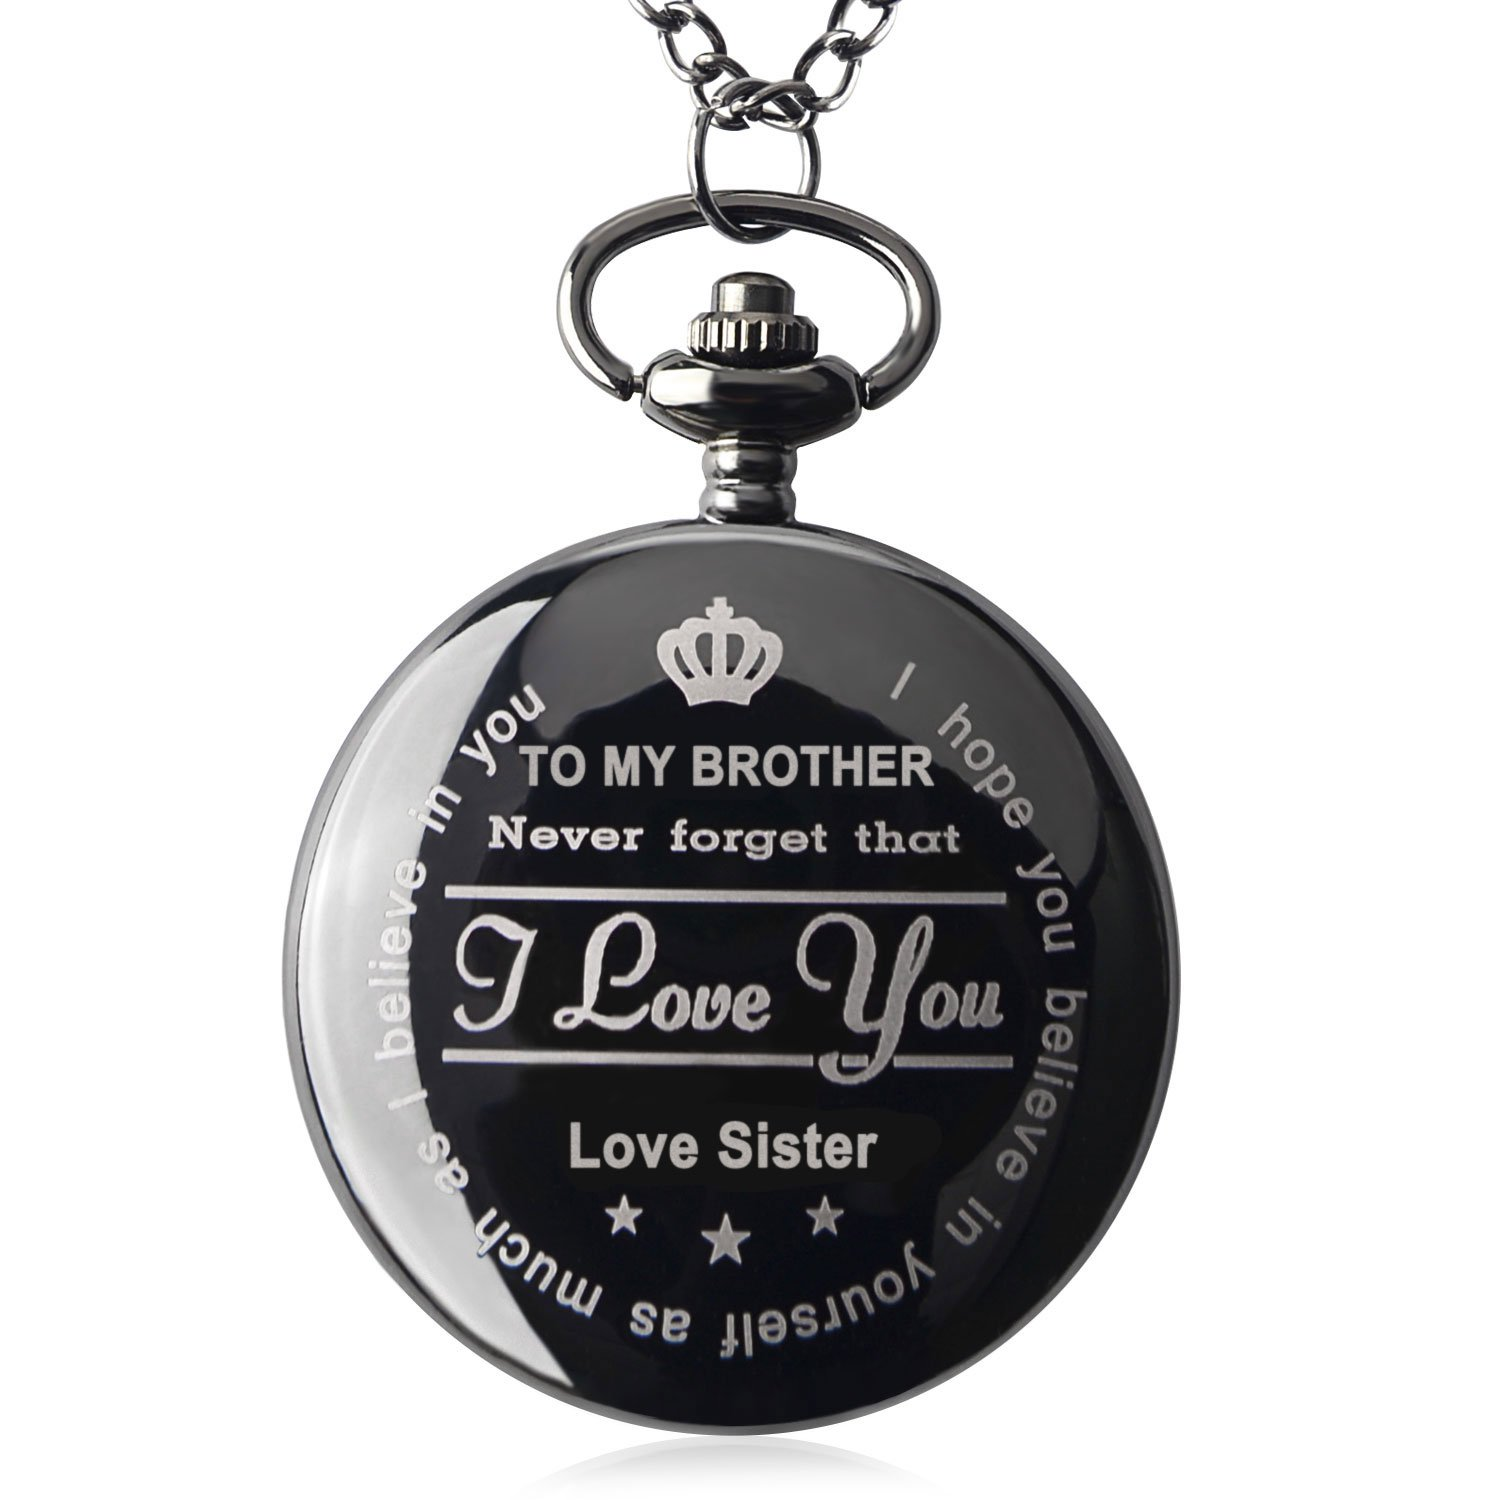 Brother Gifts for Birthday or Anniversaries Graduation Novelty Gift to Big Brother from Brother or Sister Engraved Pocket Watch with Gift Box for Men (Love Sister Black)